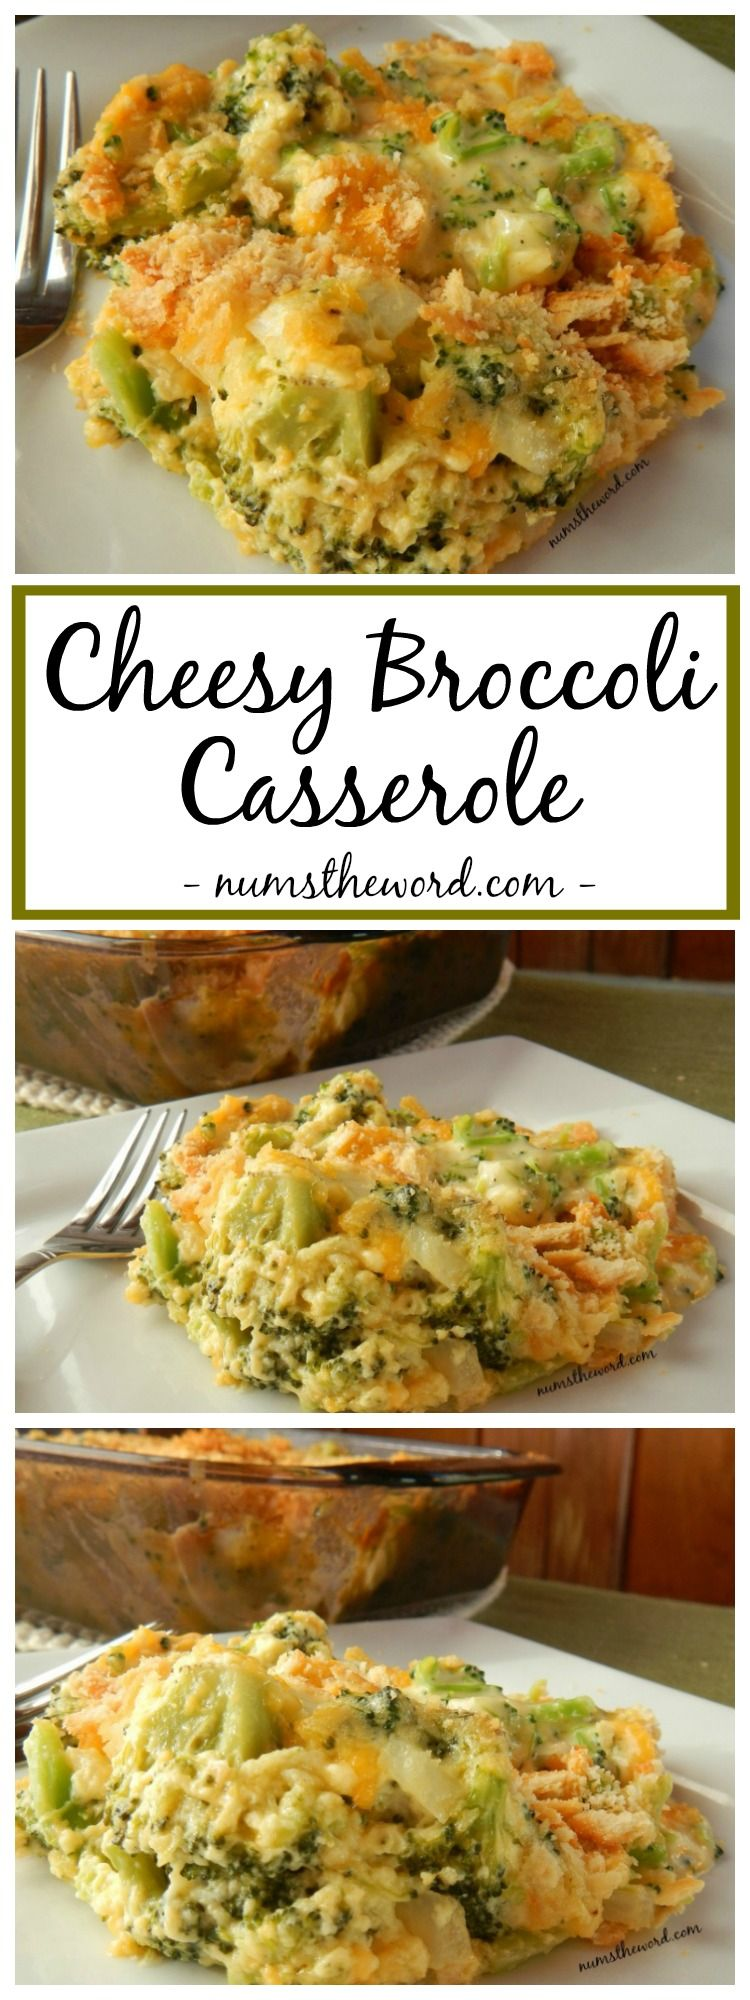 Cheesy Broccoli Casserole Is The Perfect Side Dish To Any Meal Easy To Prepare